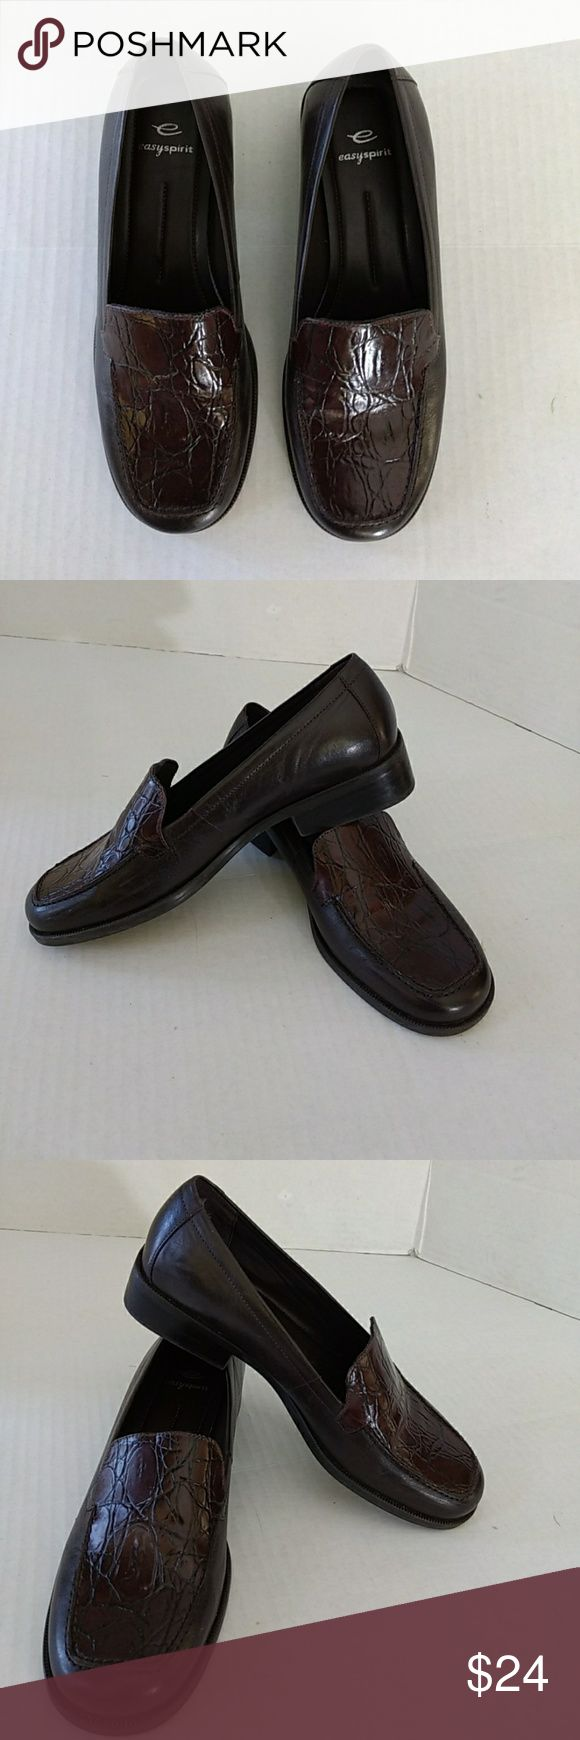 Easy Spirit Womens Shoes Leather Upper Dark brown Shoes Pre-owned Easy Spirit Shoes Flats & Loafers